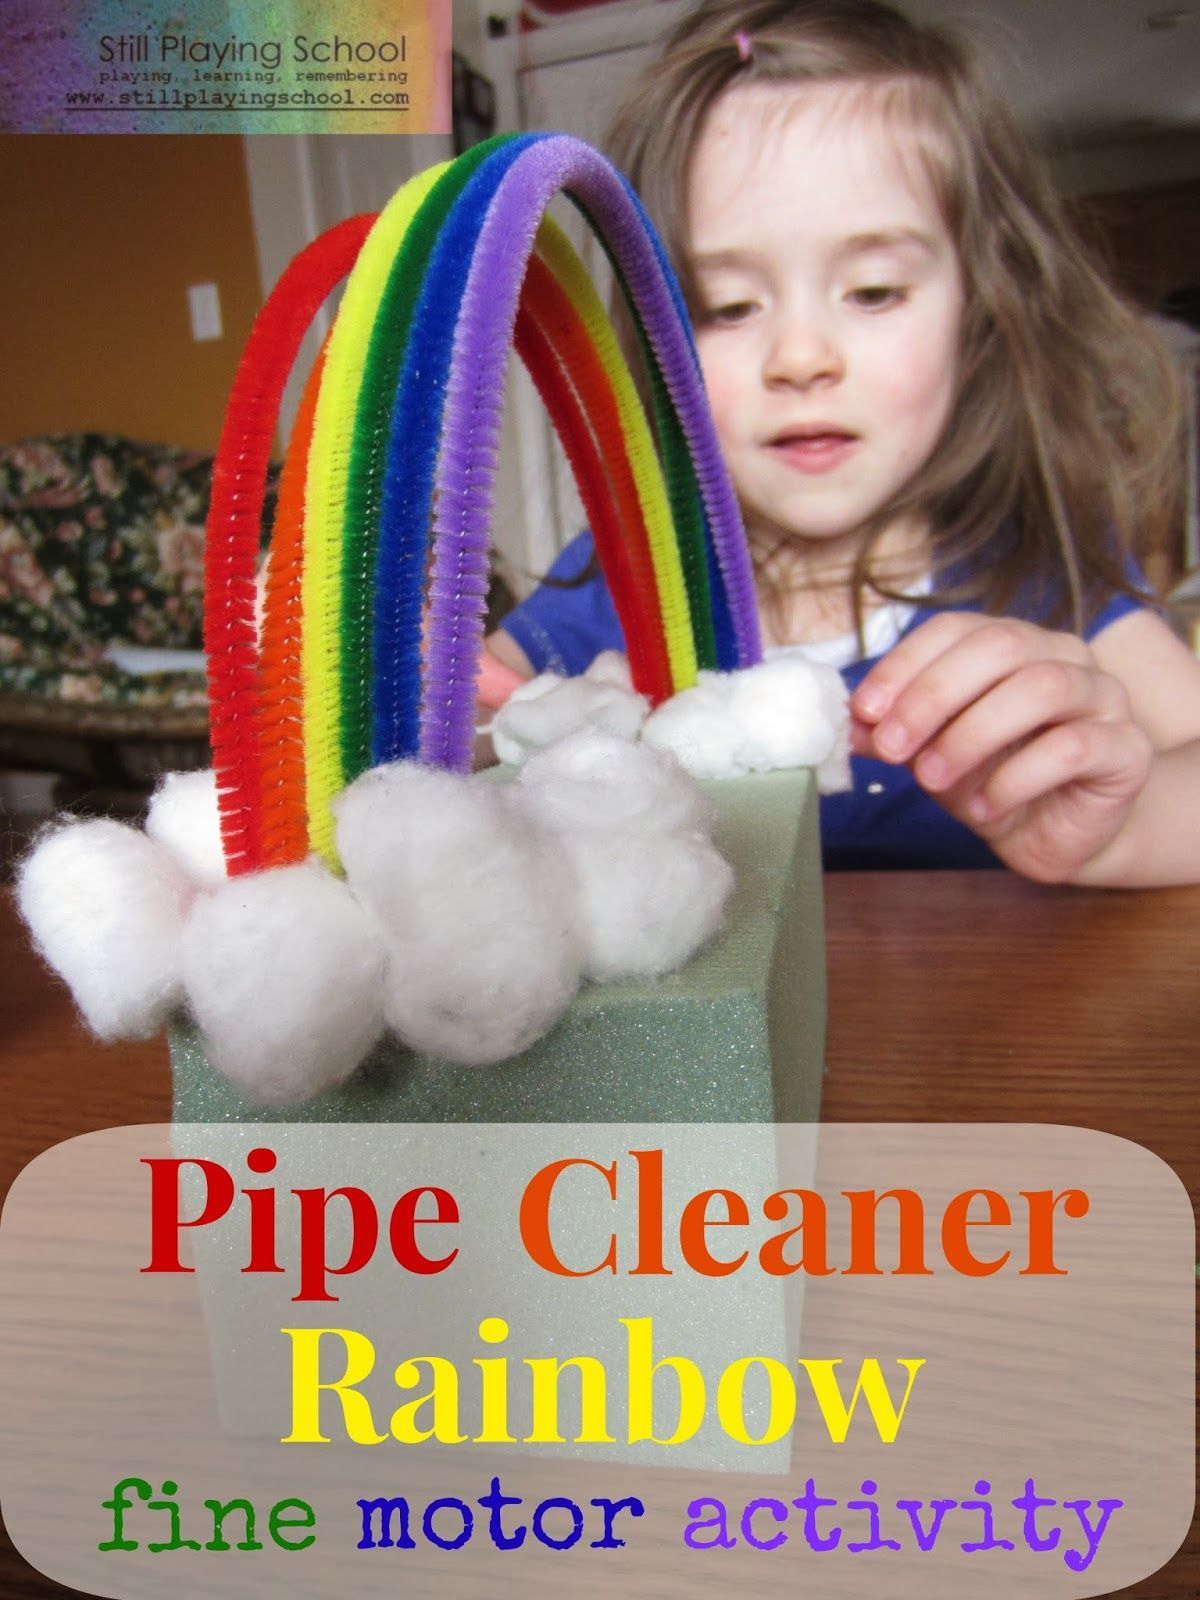 Pipe Cleaner Rainbow